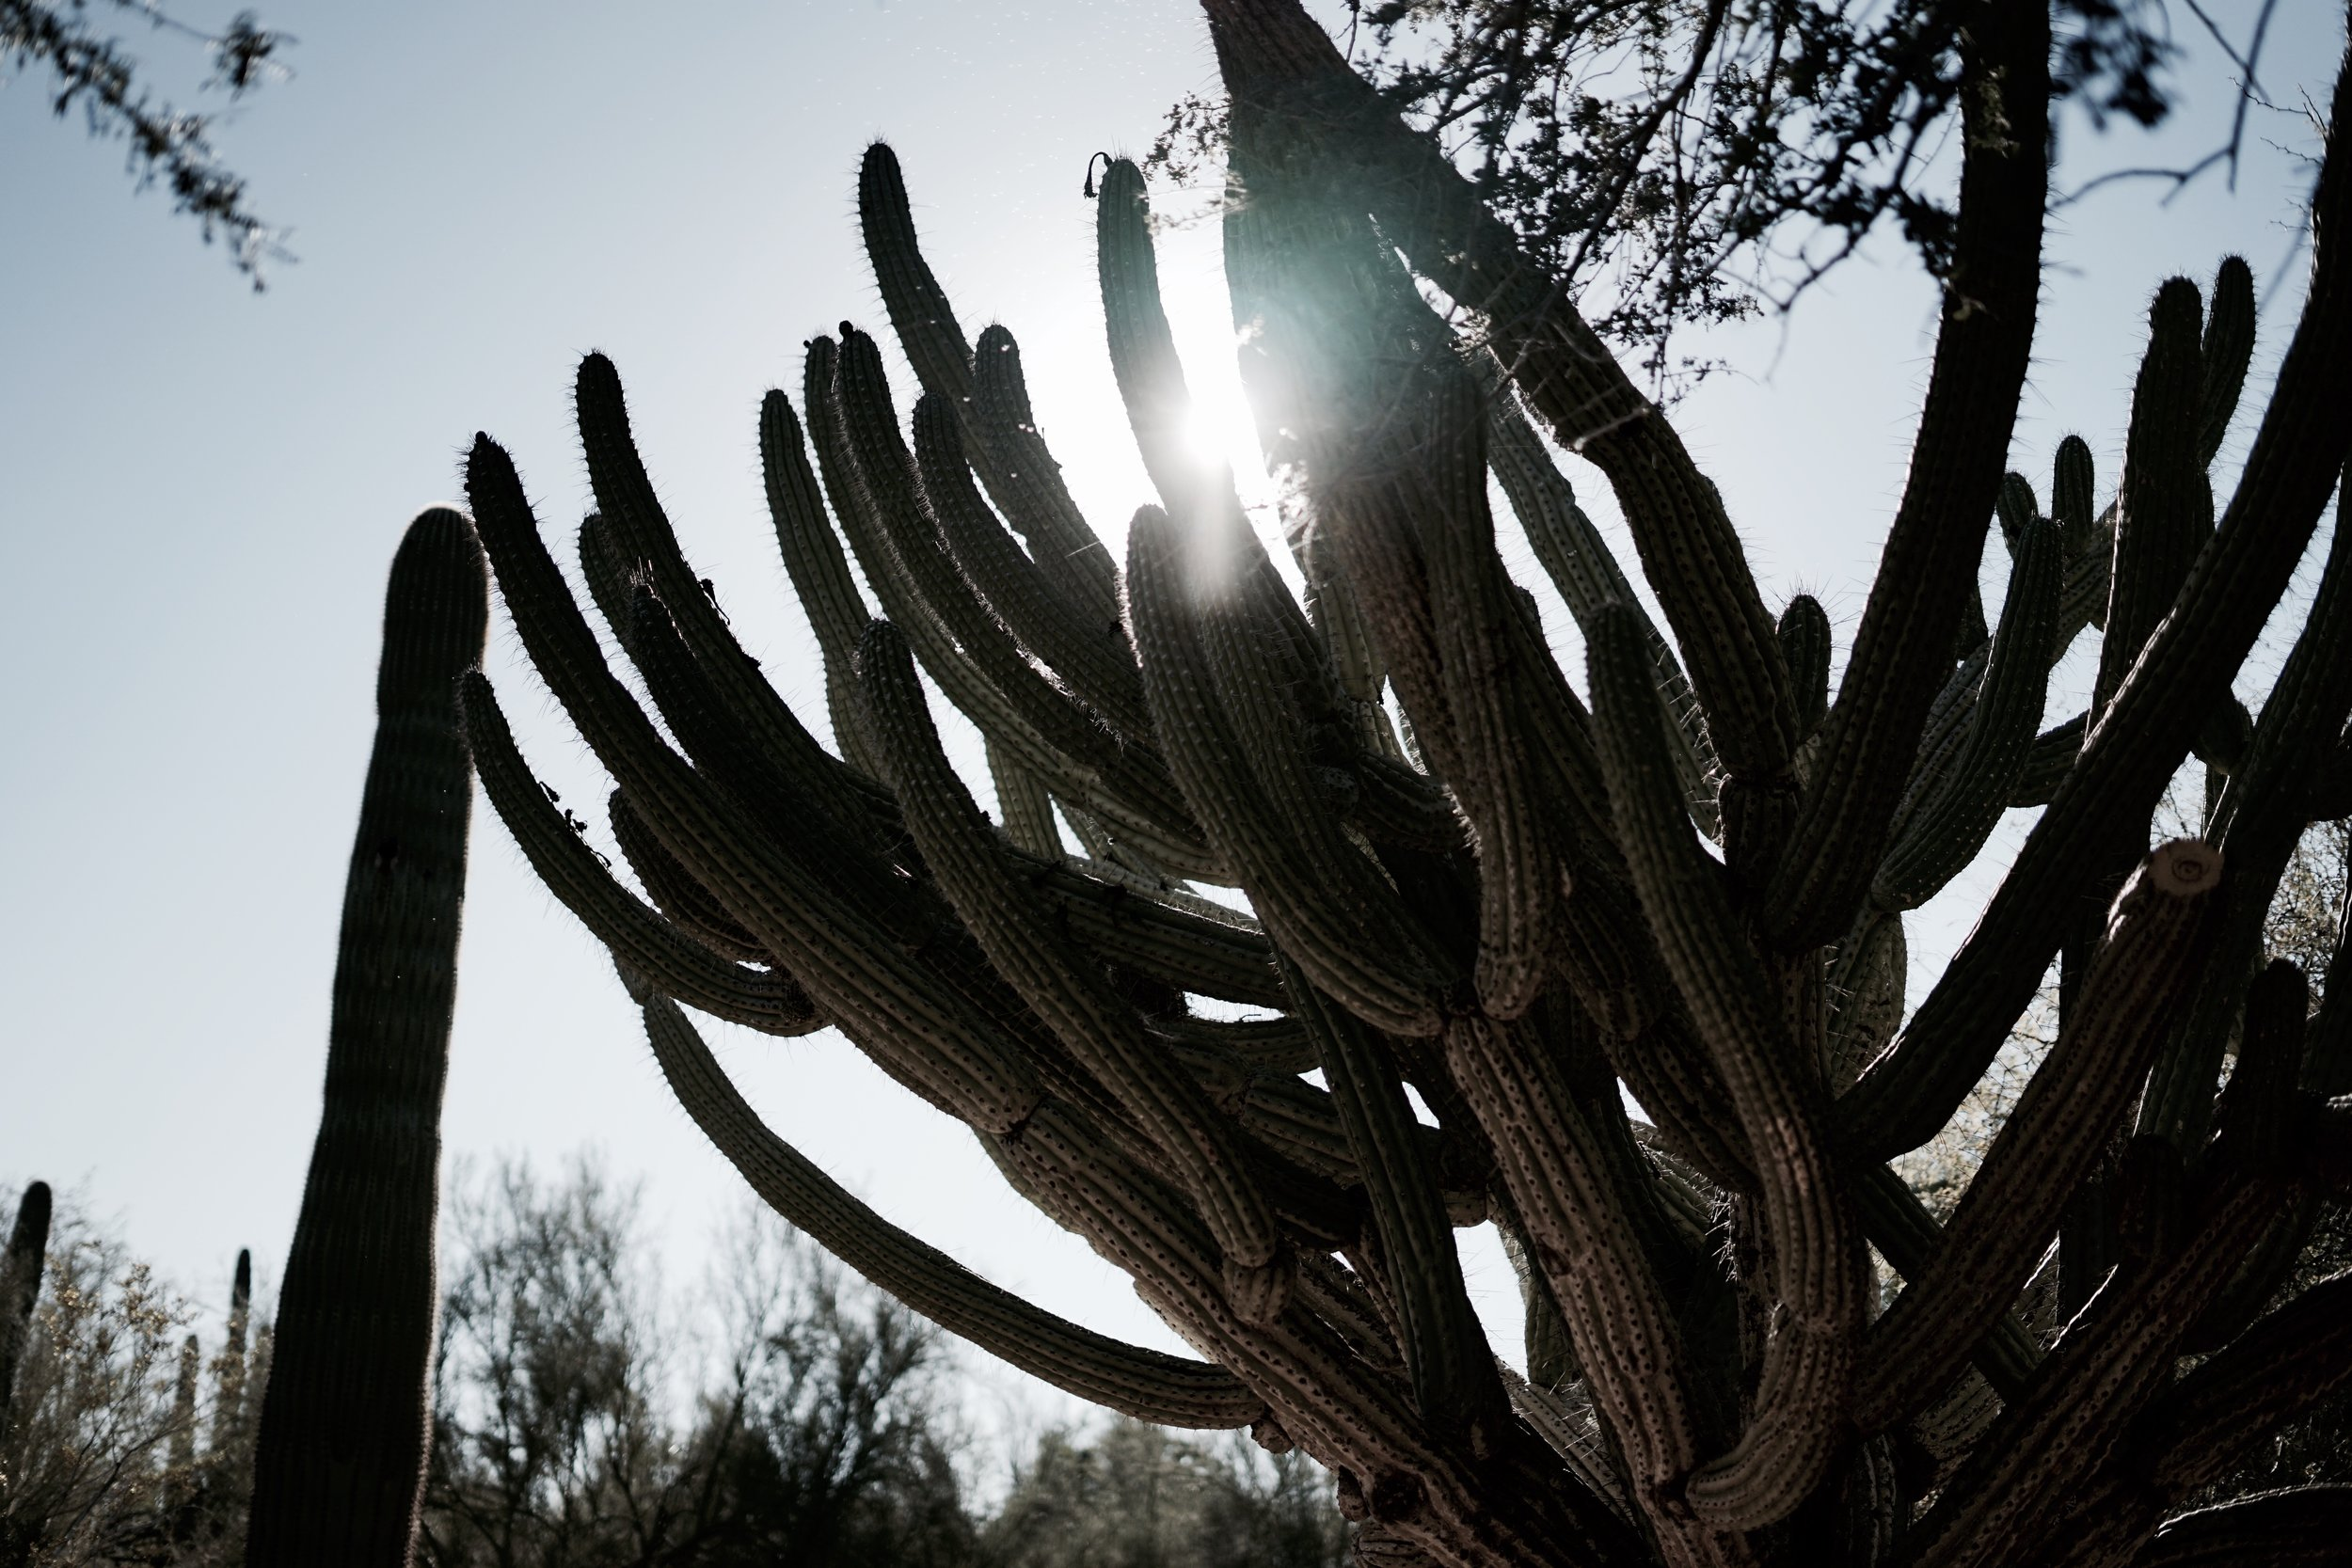 Organ pipe cactus in Arizona. Photo by Courtney Baxter.